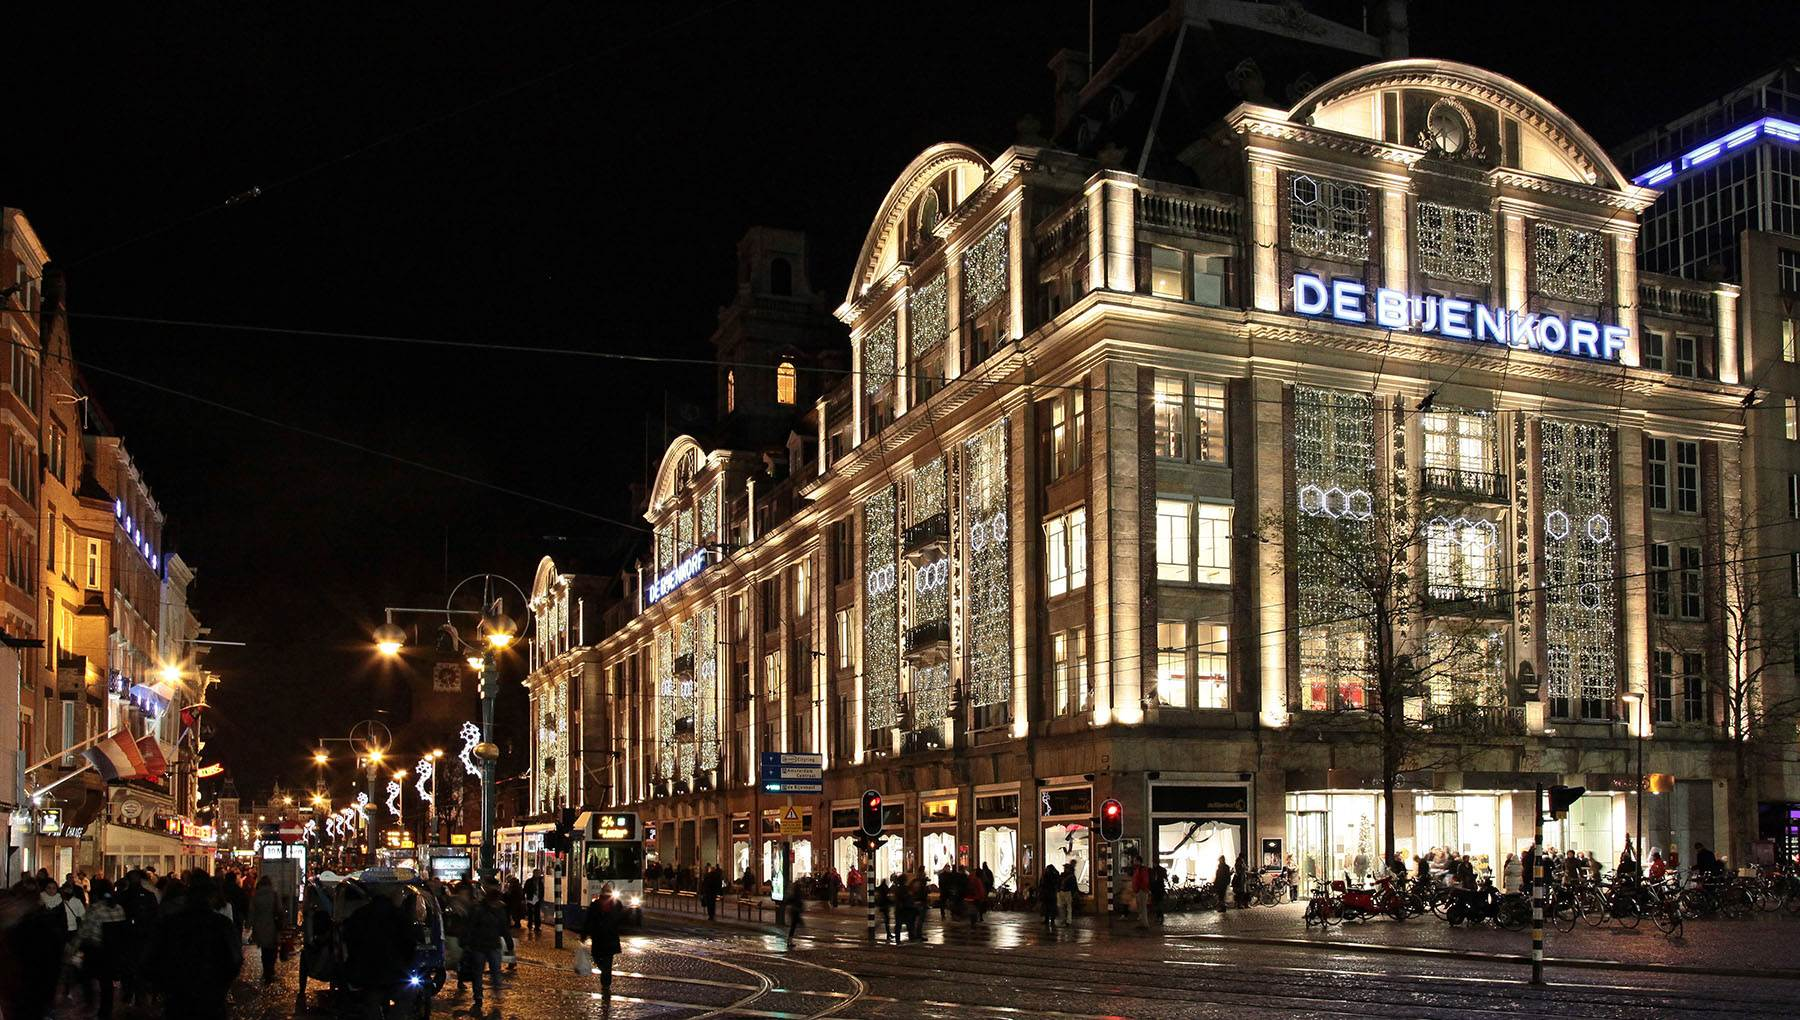 Dutch Square Mall >> Christmas shopping in Amsterdam | I amsterdam